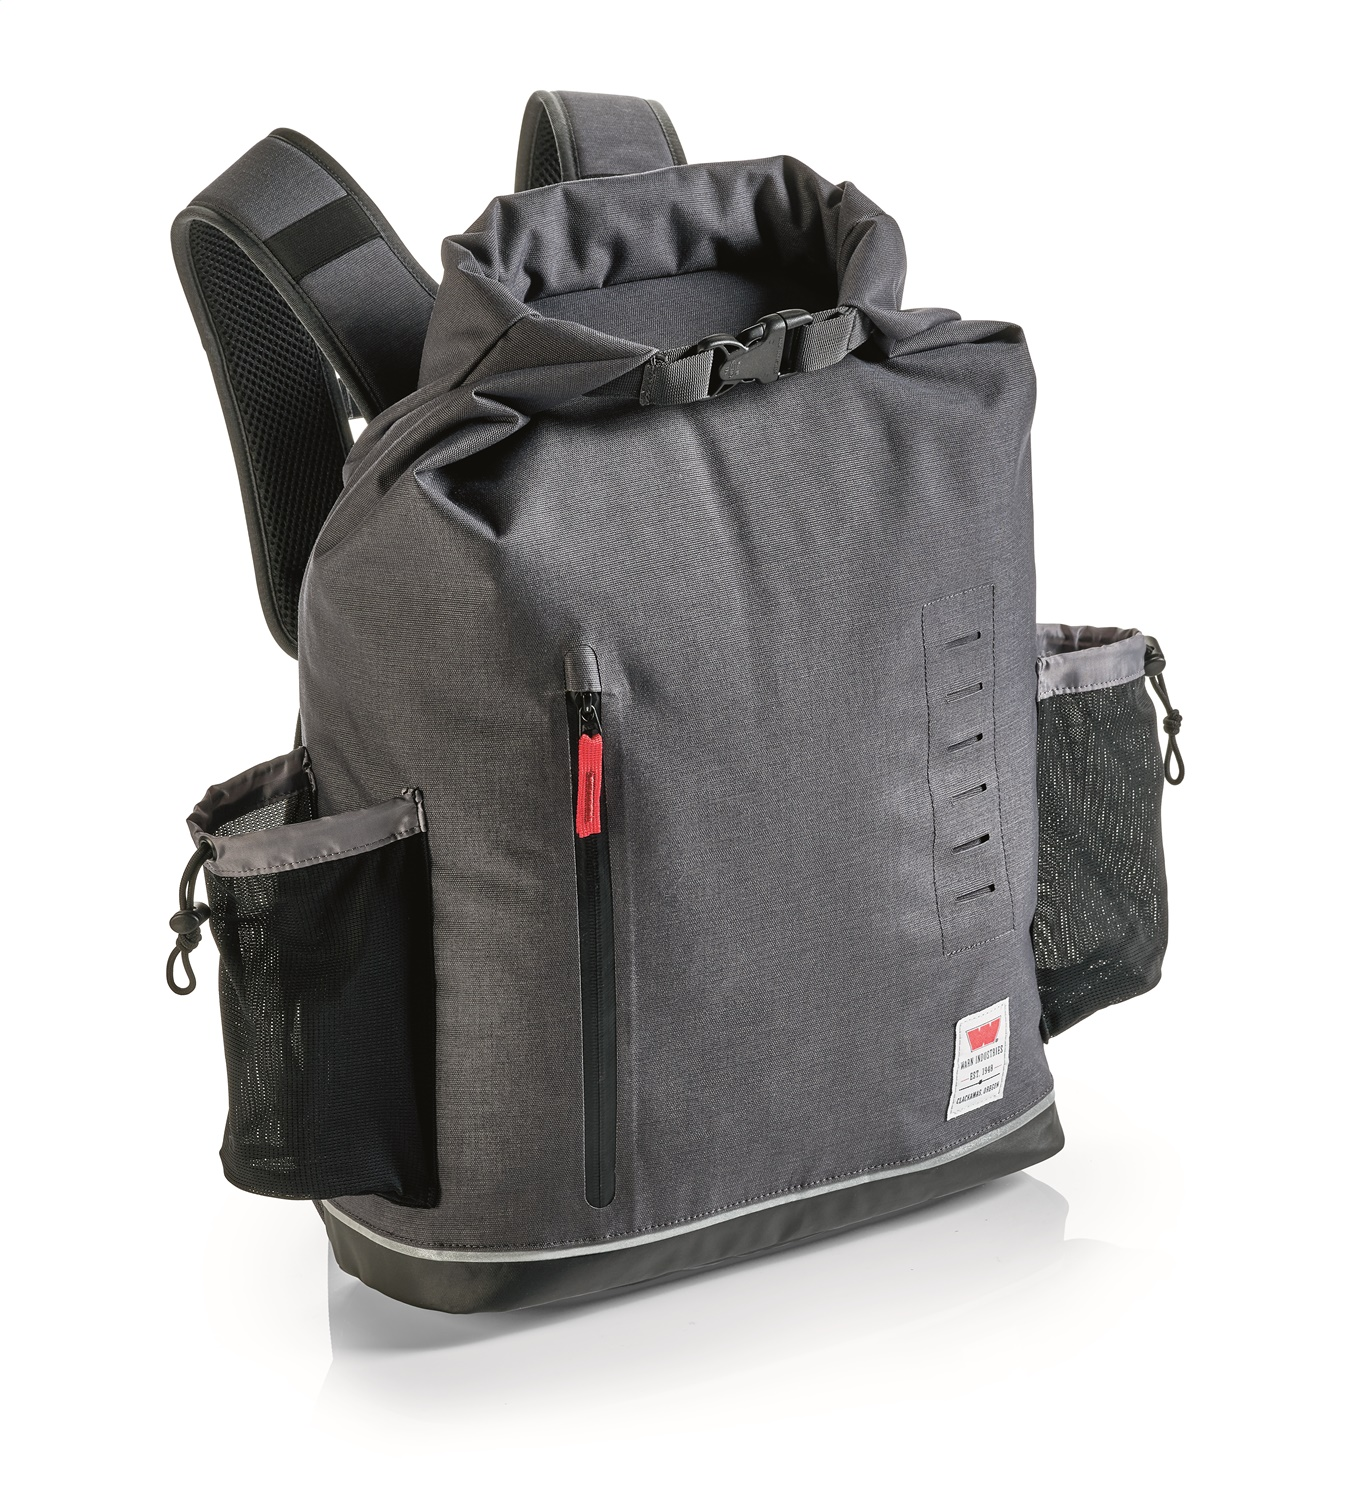 Warn 102862 Epic Roll Top Backpack